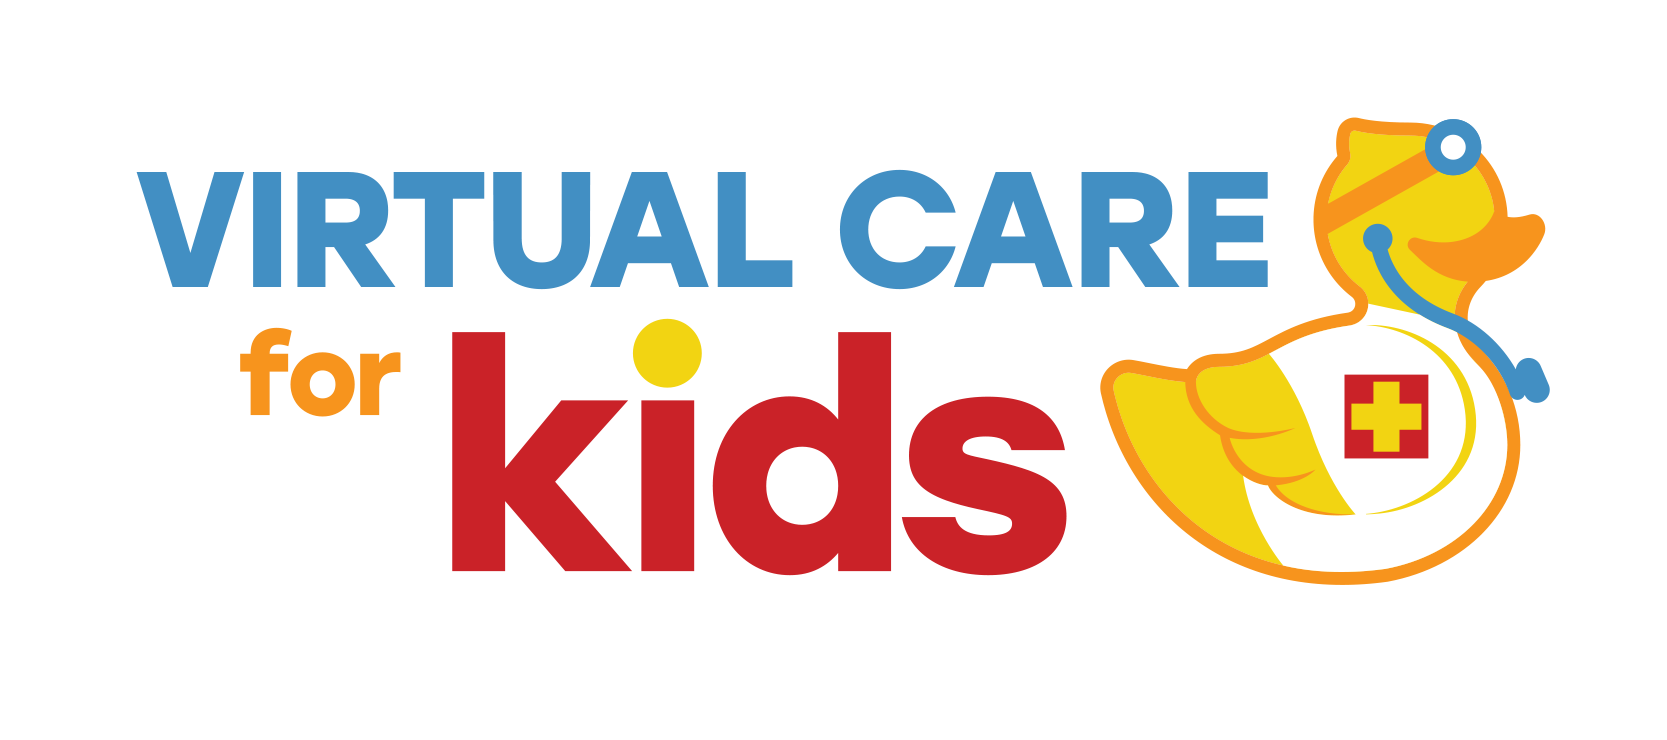 Urgent Care for Kids - Virtual Care for Kids Logo